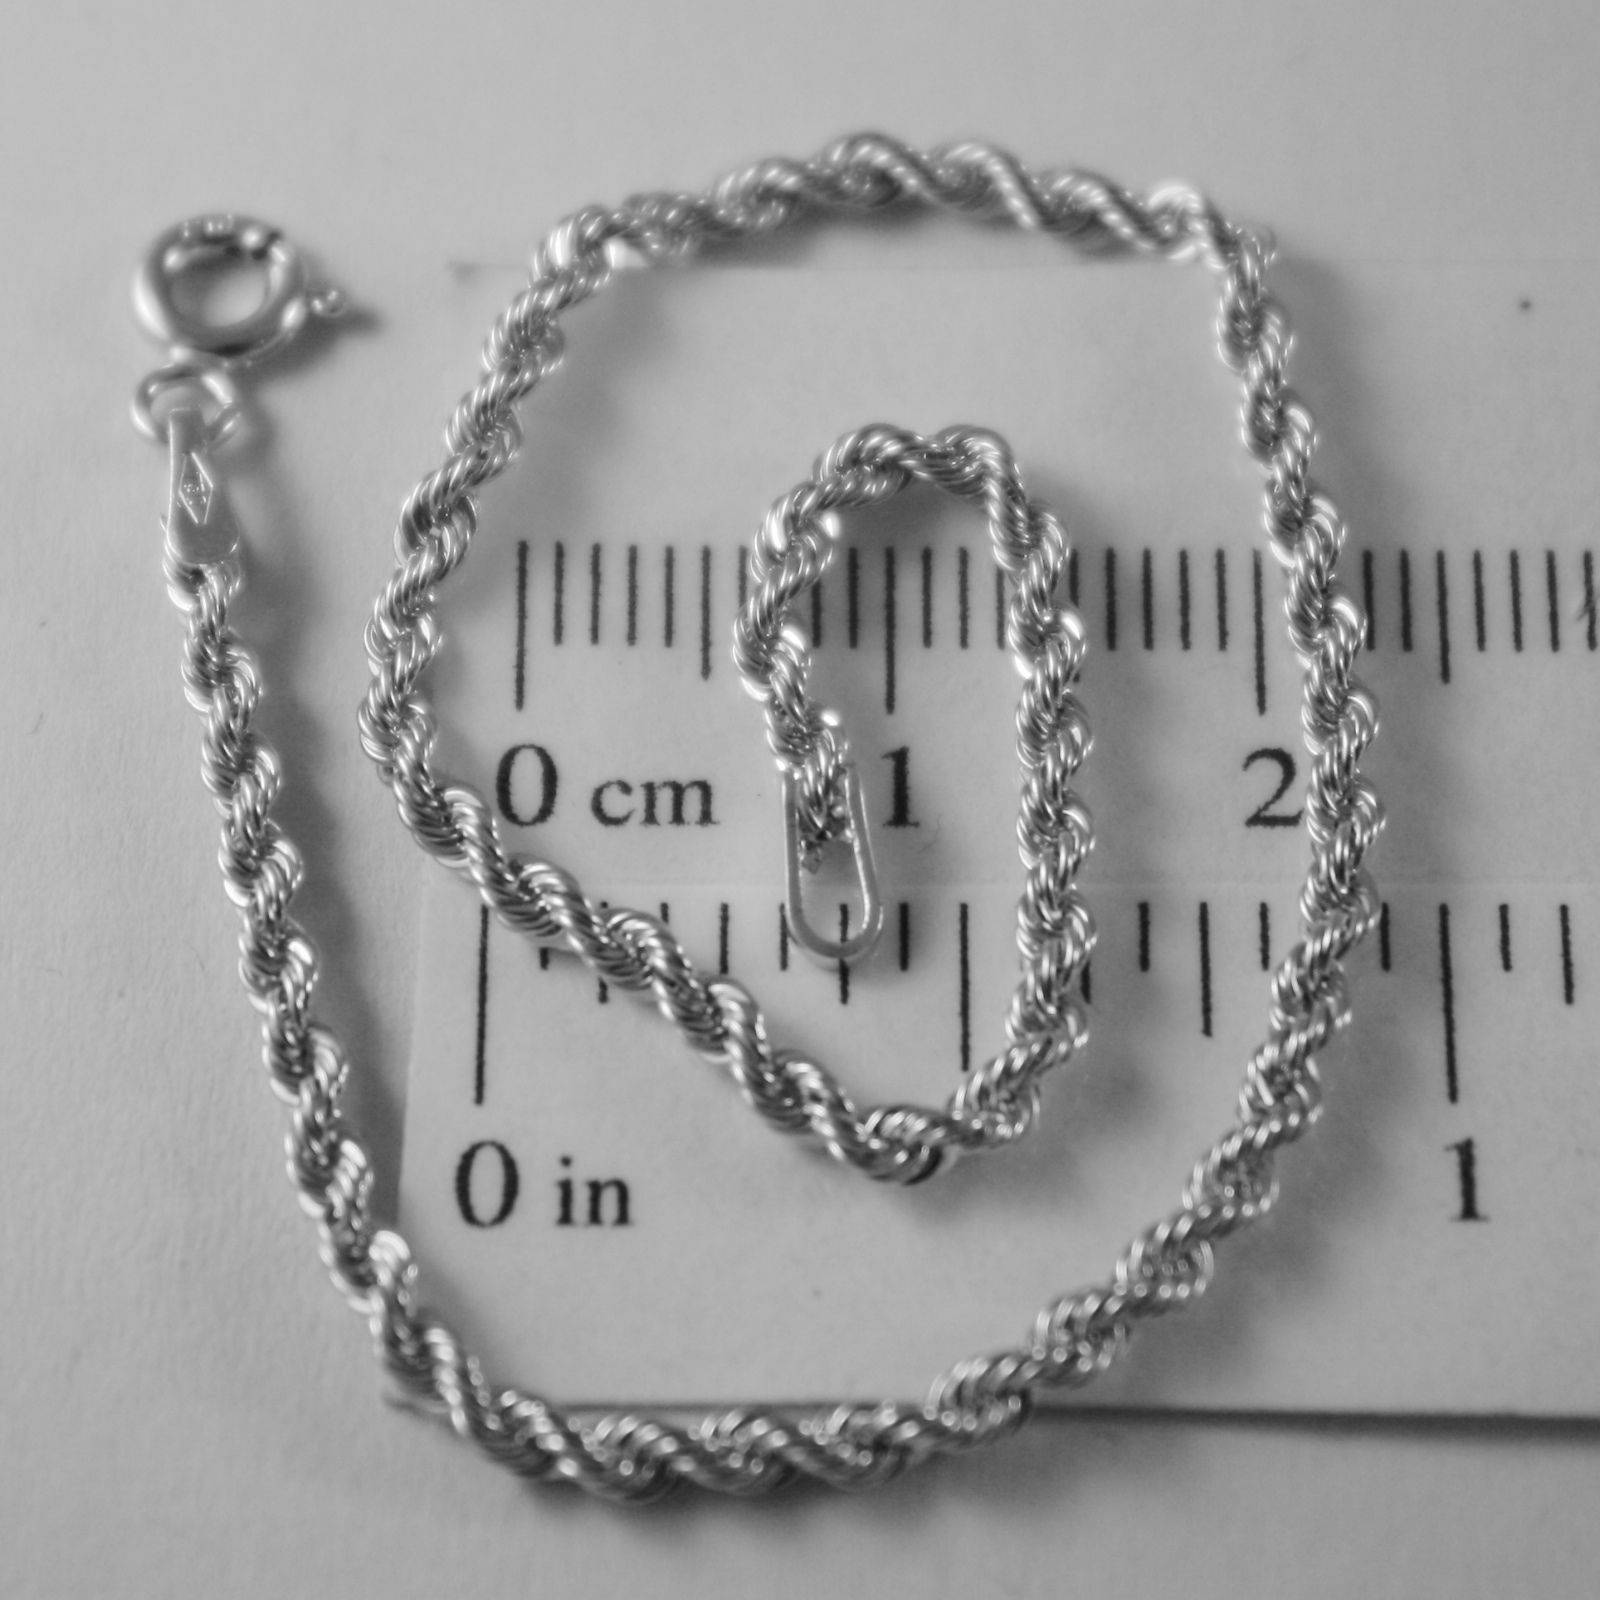 18K WHITE GOLD BRACELET, BRAID ROPE LINK, 7.30 INCHES LONG, MADE IN ITALY